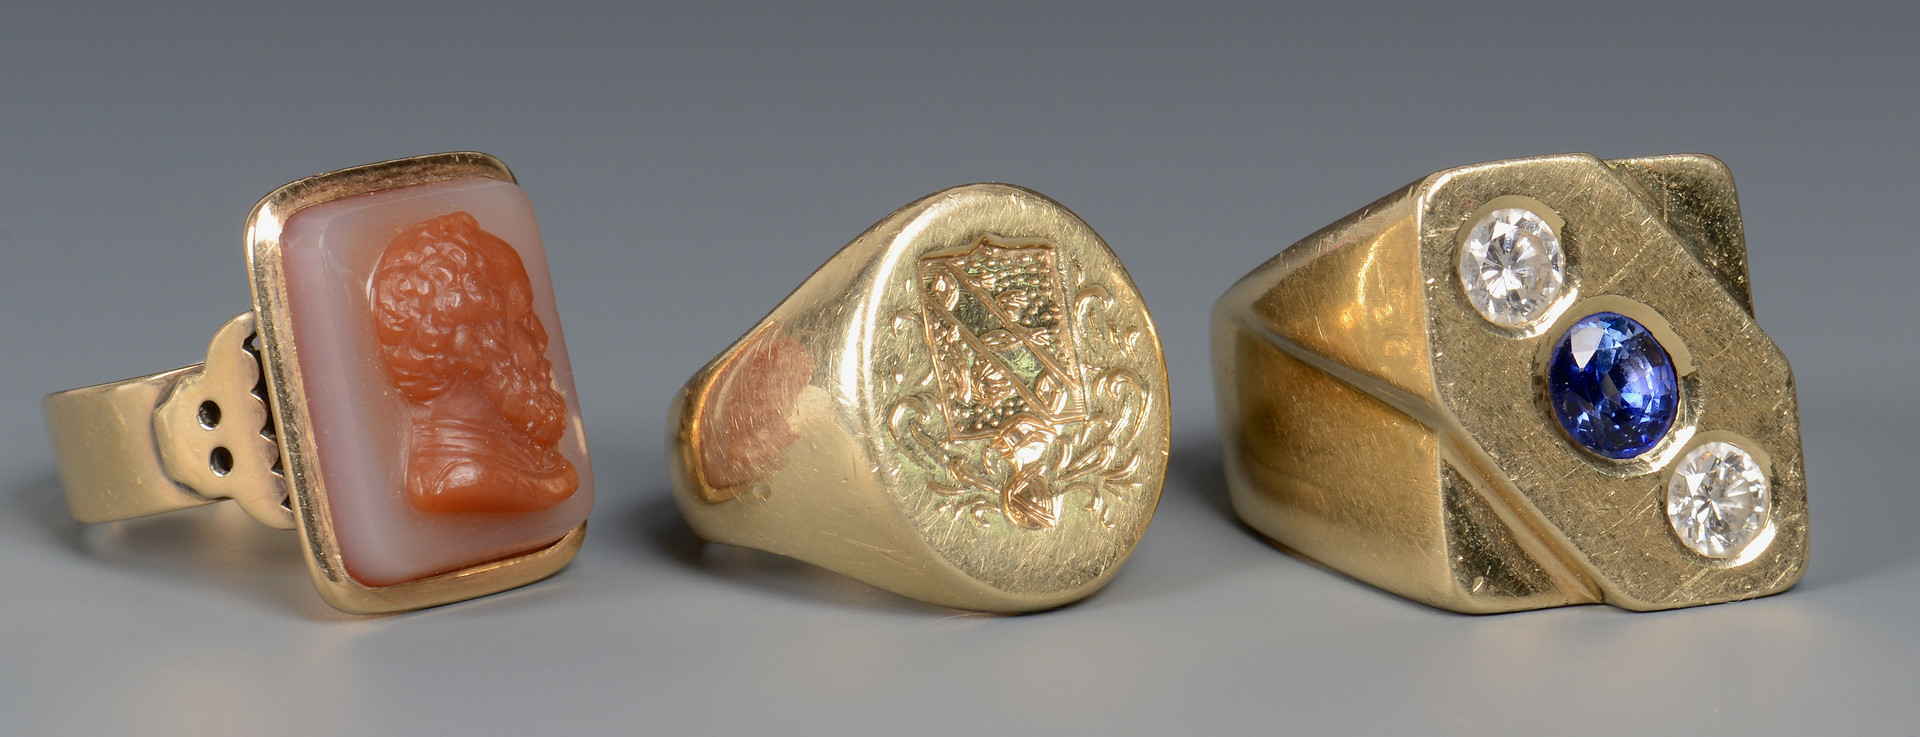 Lot 46: Three 14k Gent's Dress Rings